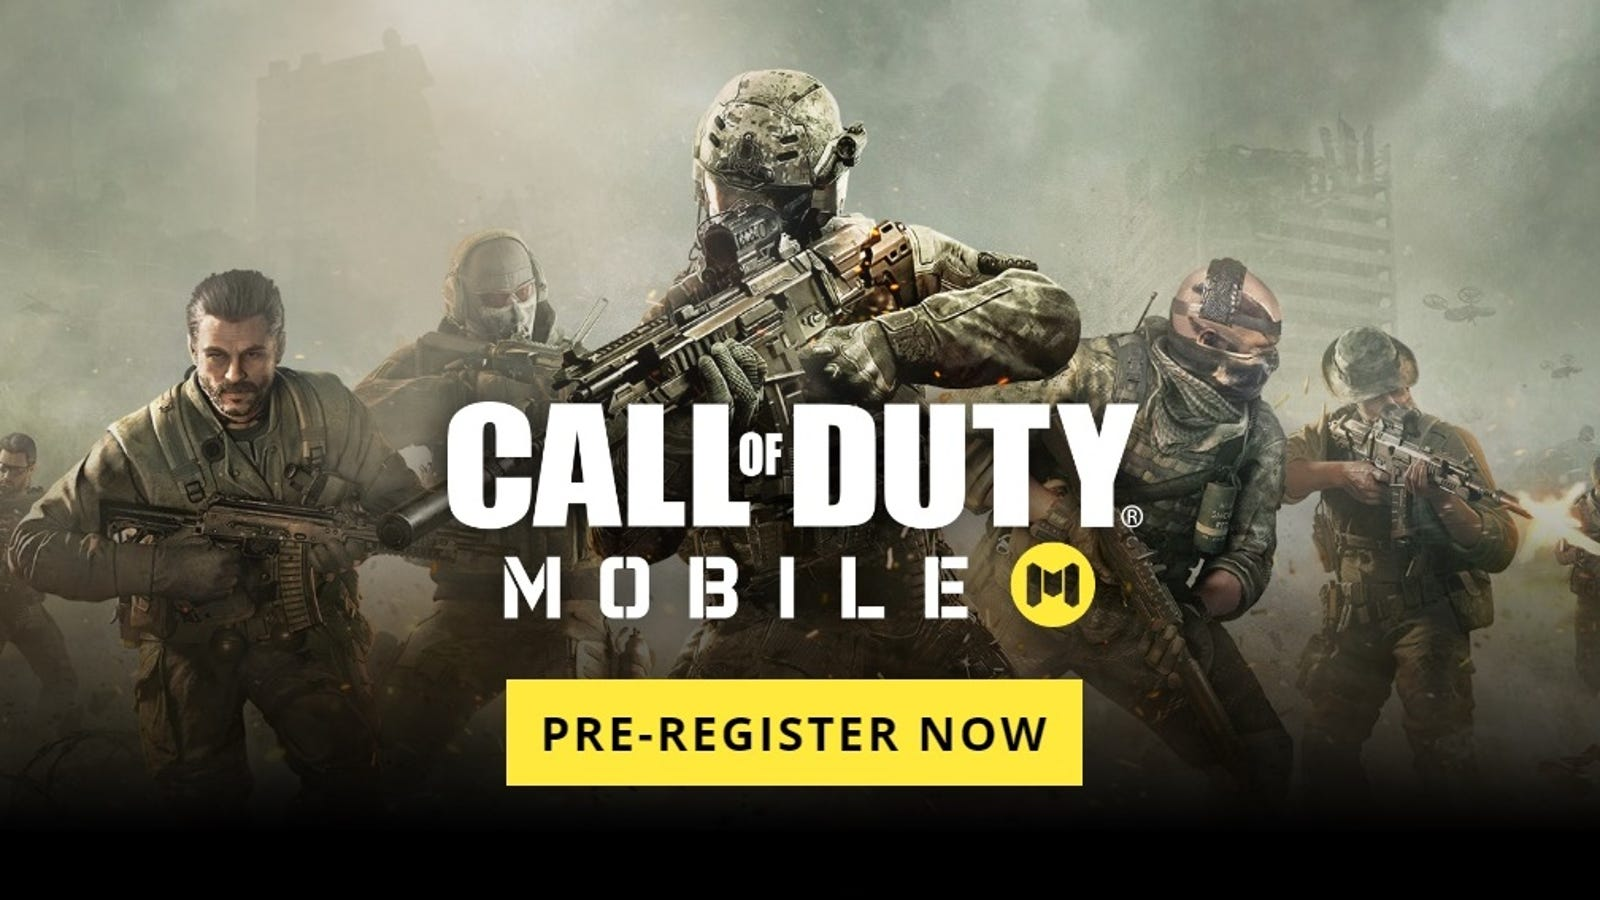 Pre-Register Now for the 'Call of Duty: Mobile' Beta on iOS and Android